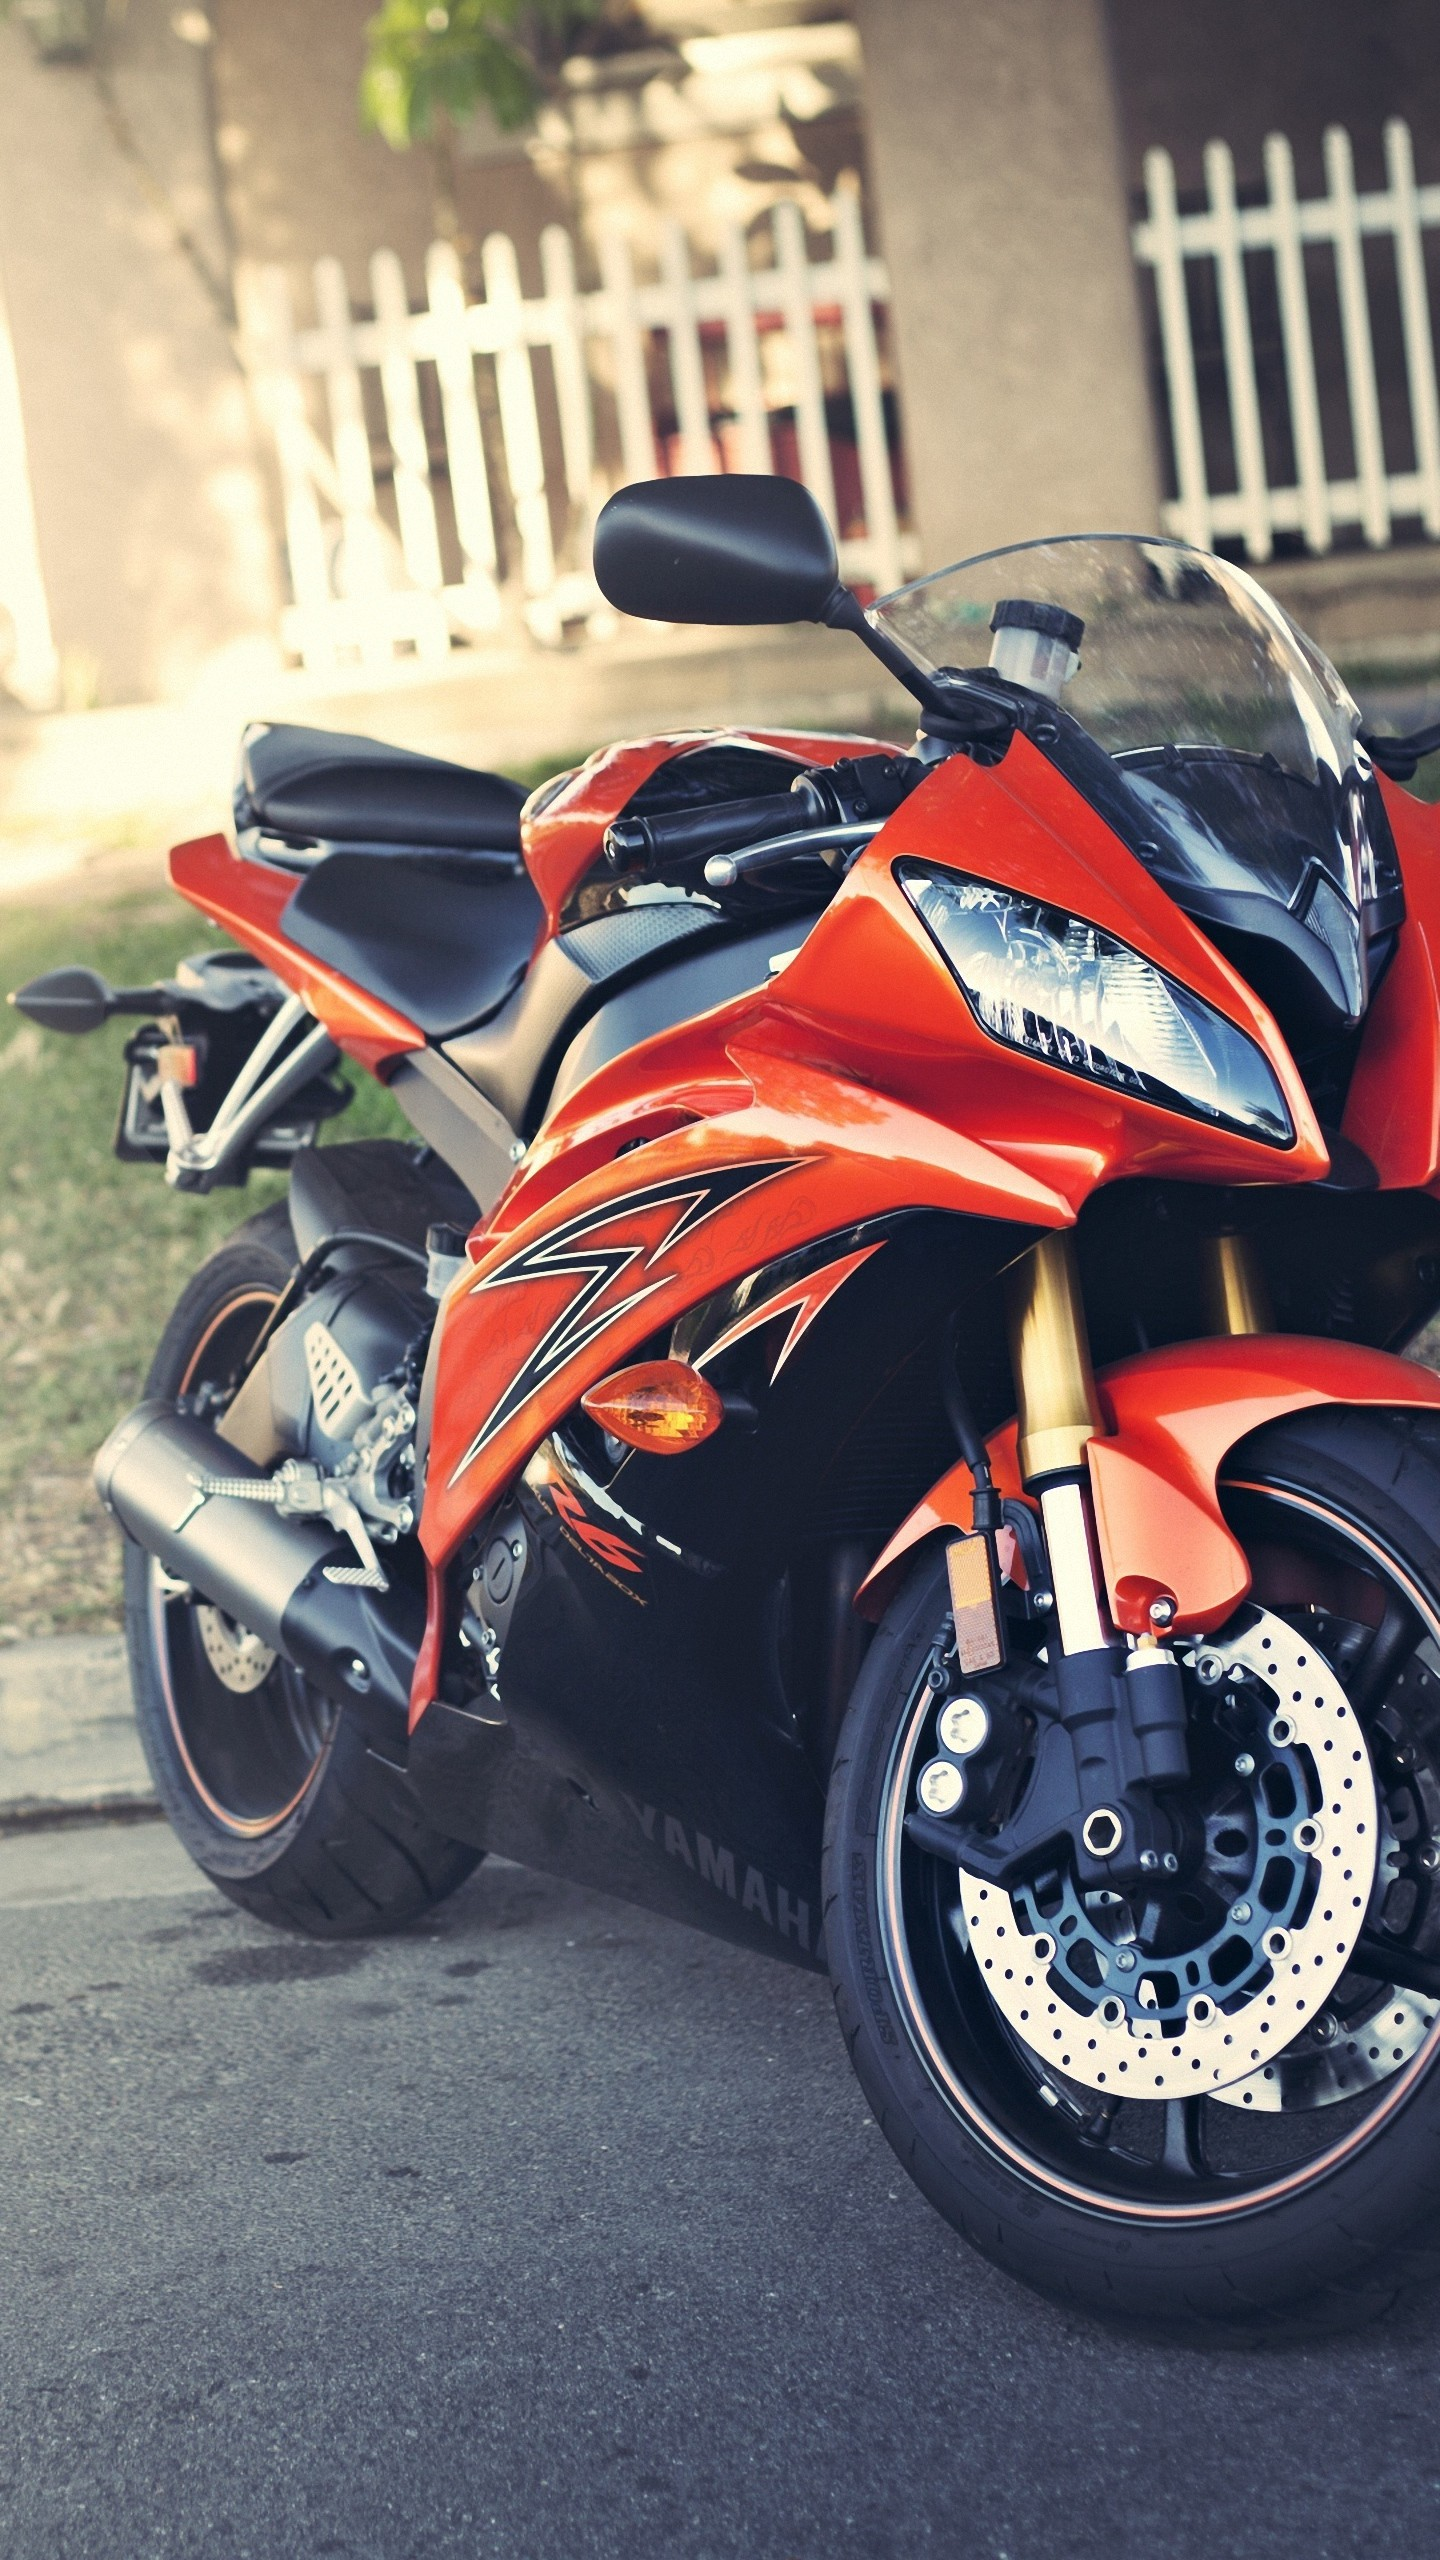 Yamaha Motorcycle Wallpaper Posted By Zoey Anderson